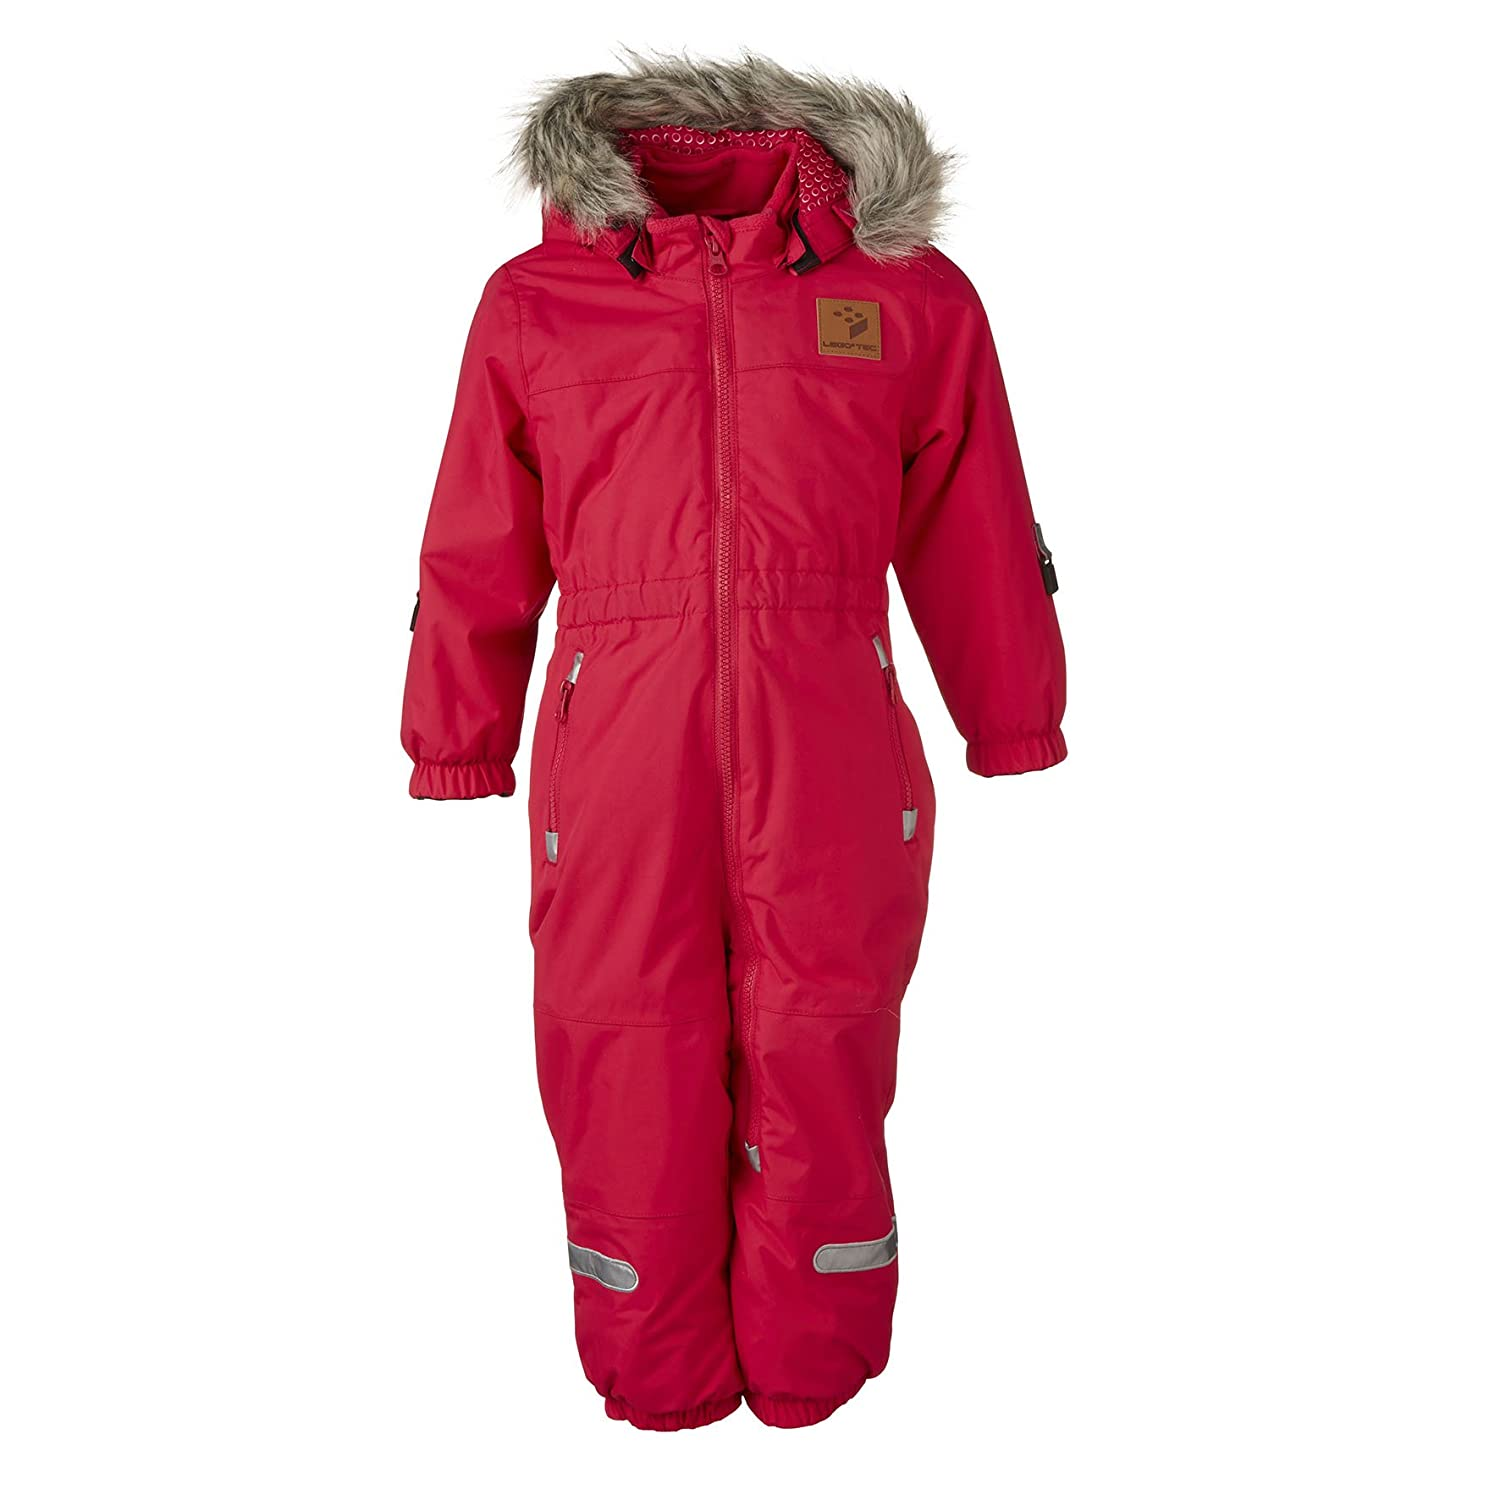 Lego Wear Girl's Snowsuit Lego Wear Girl's Snowsuit Legowear 18231